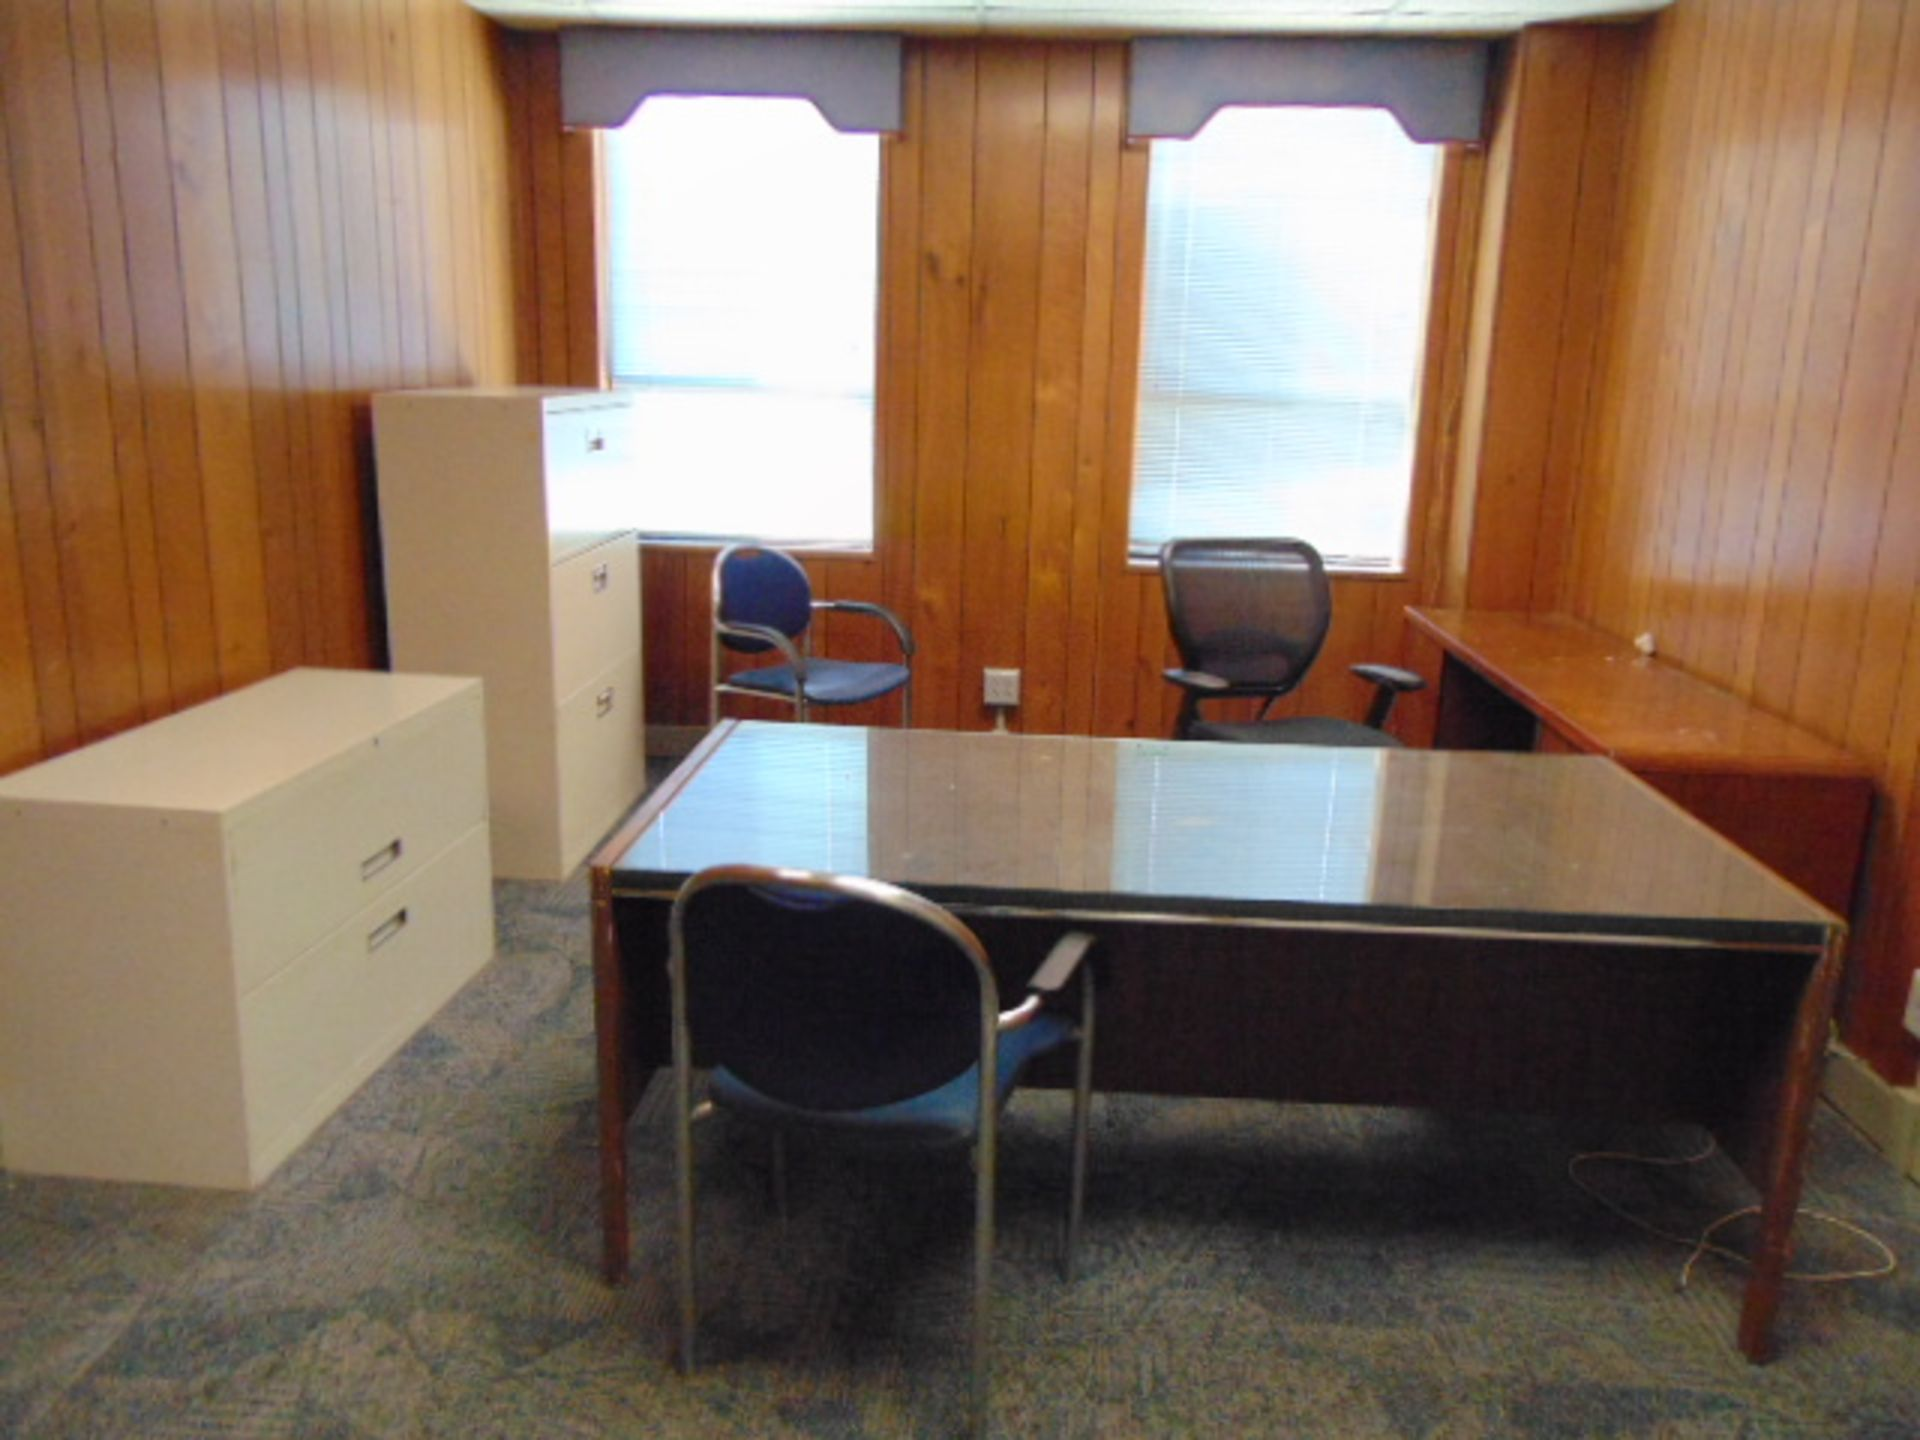 Lot 648 - LOT CONSISTING OF: desk, credenza, (3) file cabinets, & (3) chairs, assorted